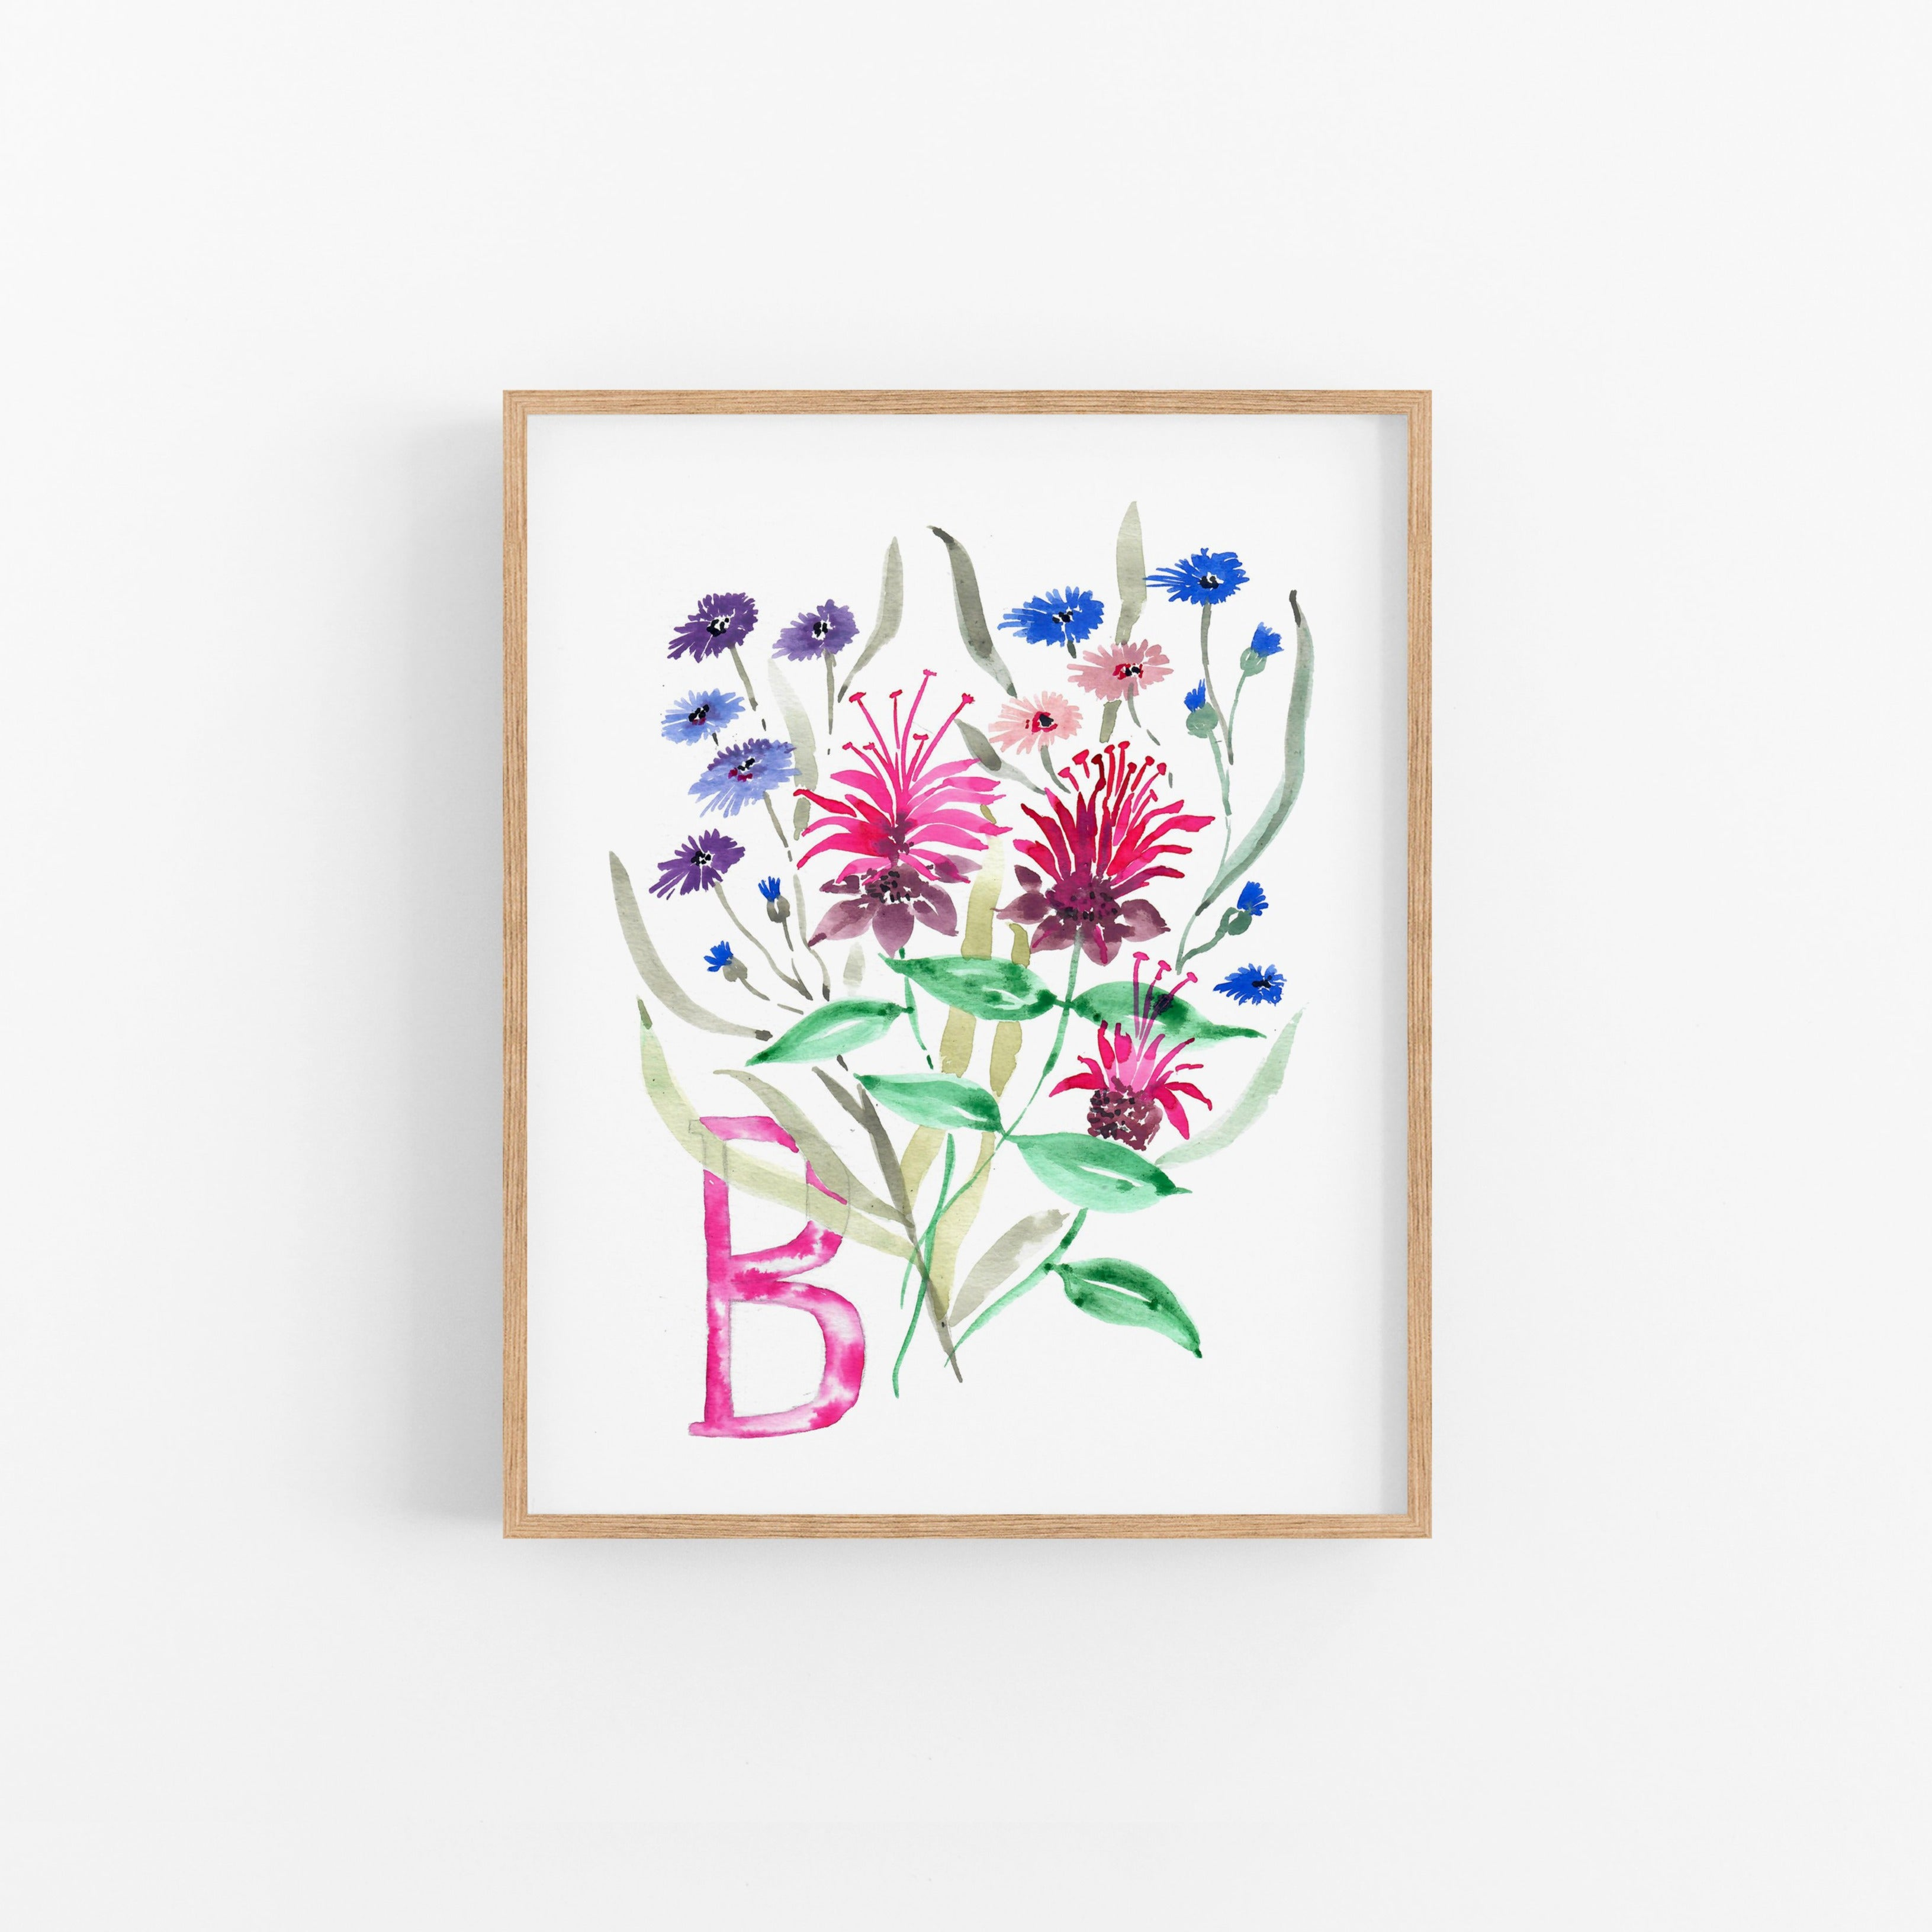 B is for Bee Balm Fine Art Print